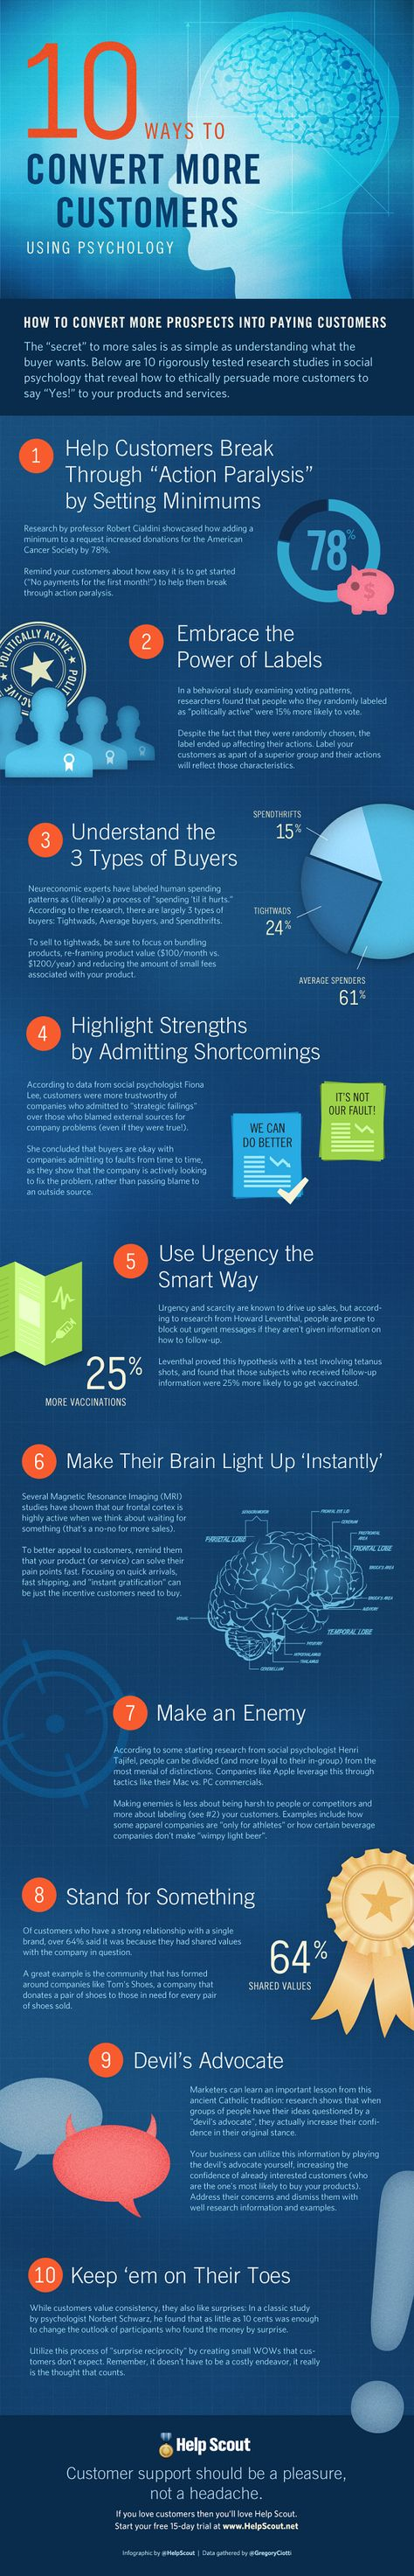 10 Ways to Convert More Customers Using Psychology (Infographic) Gregory Ciotti